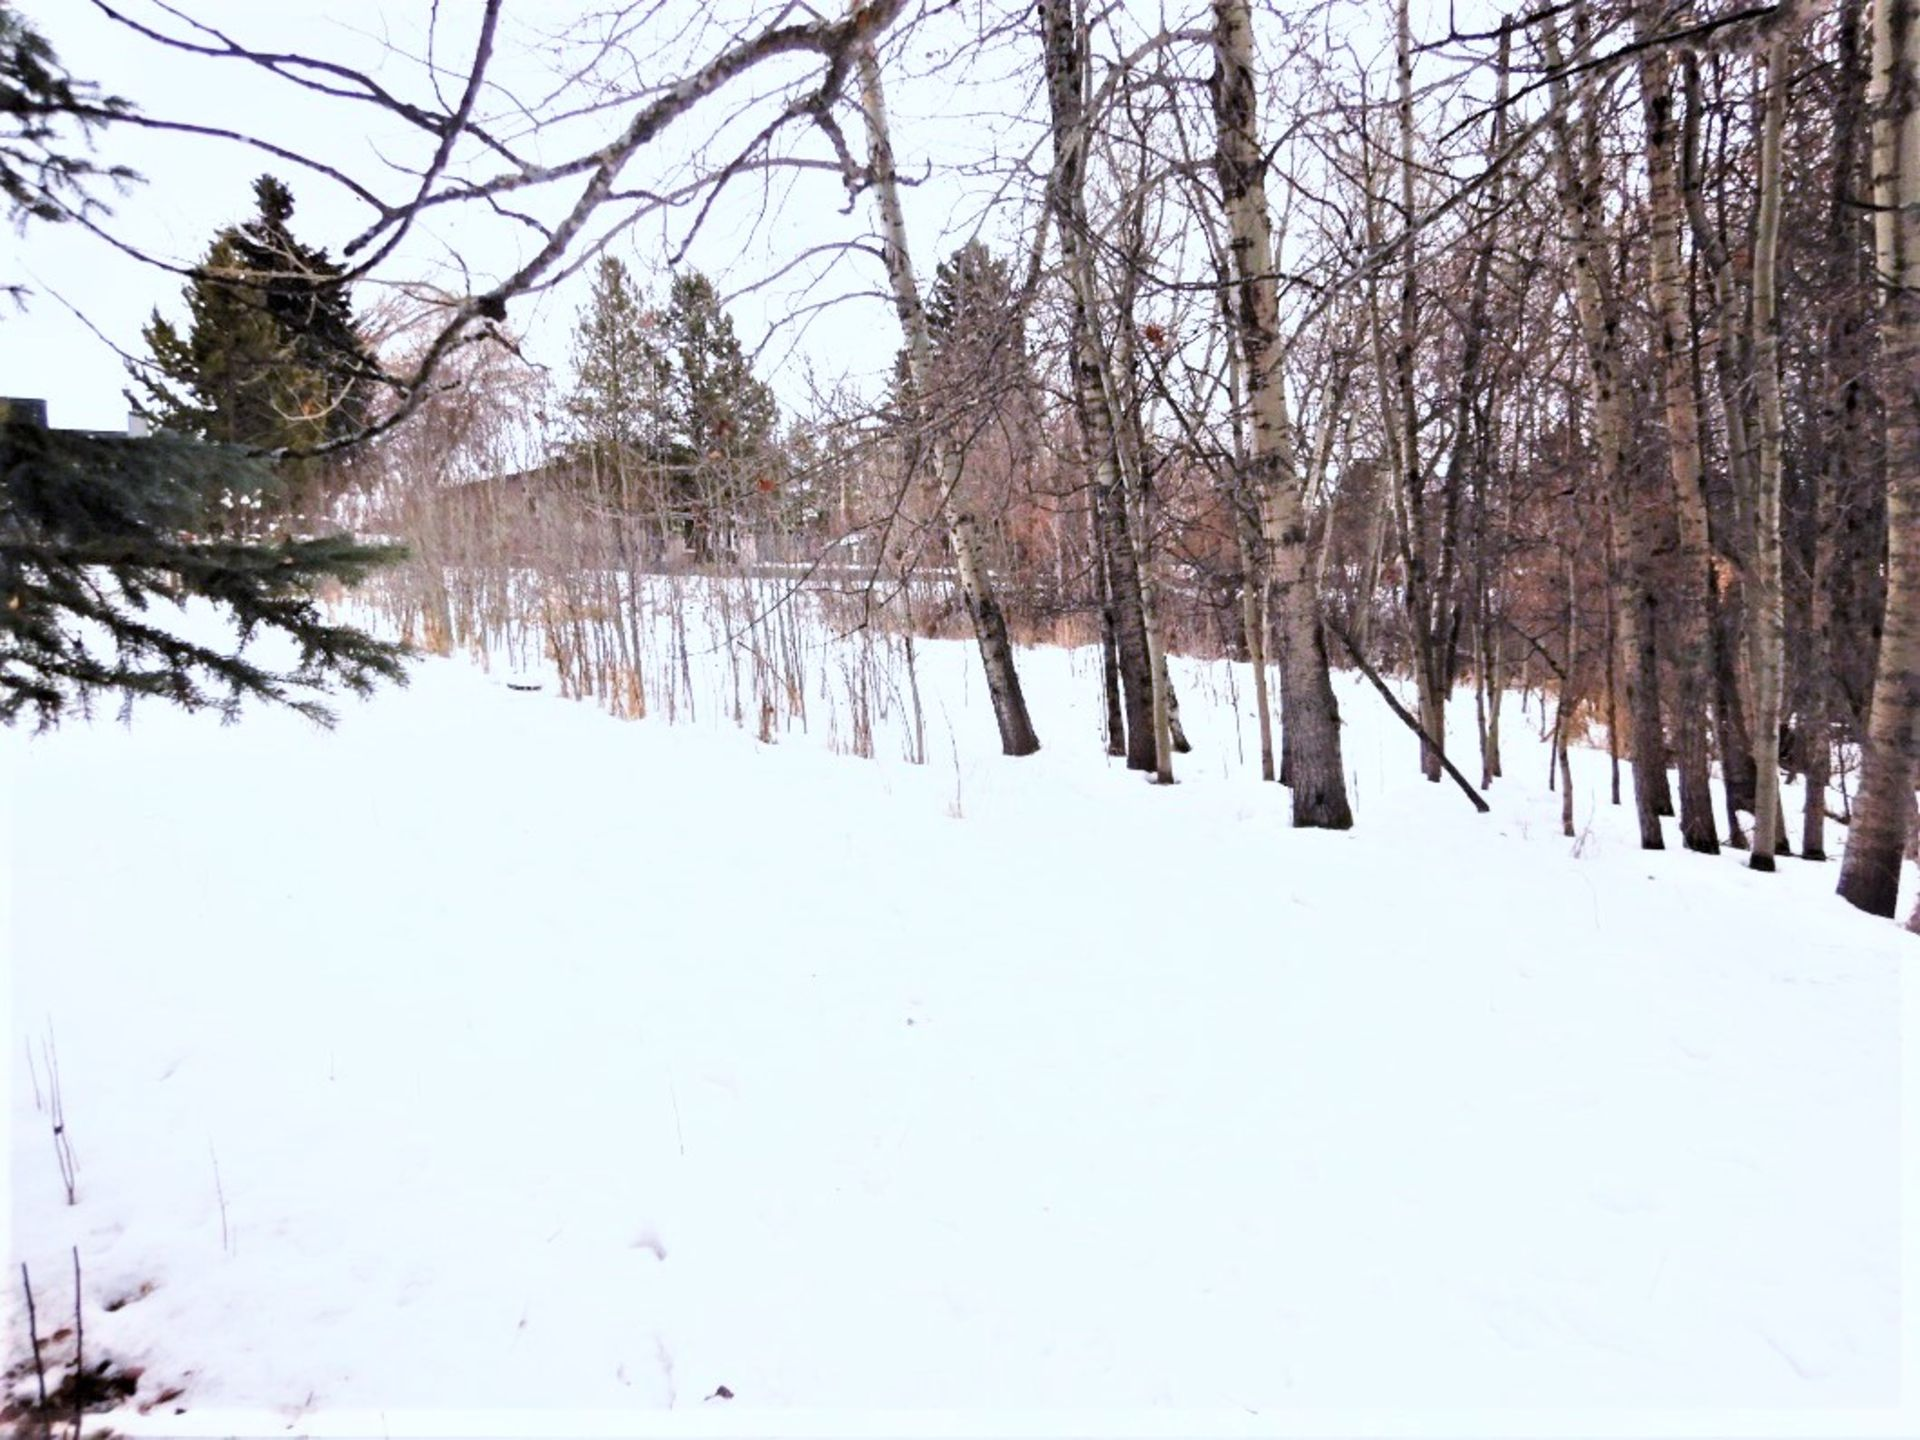 BARE LOT IN THE VILLAGE OF MIRROR, ALBERTA - LEGAL DESCRIPTION: PLAN 0728572 BLK 40 LOT 38 *ONLY - Image 4 of 4